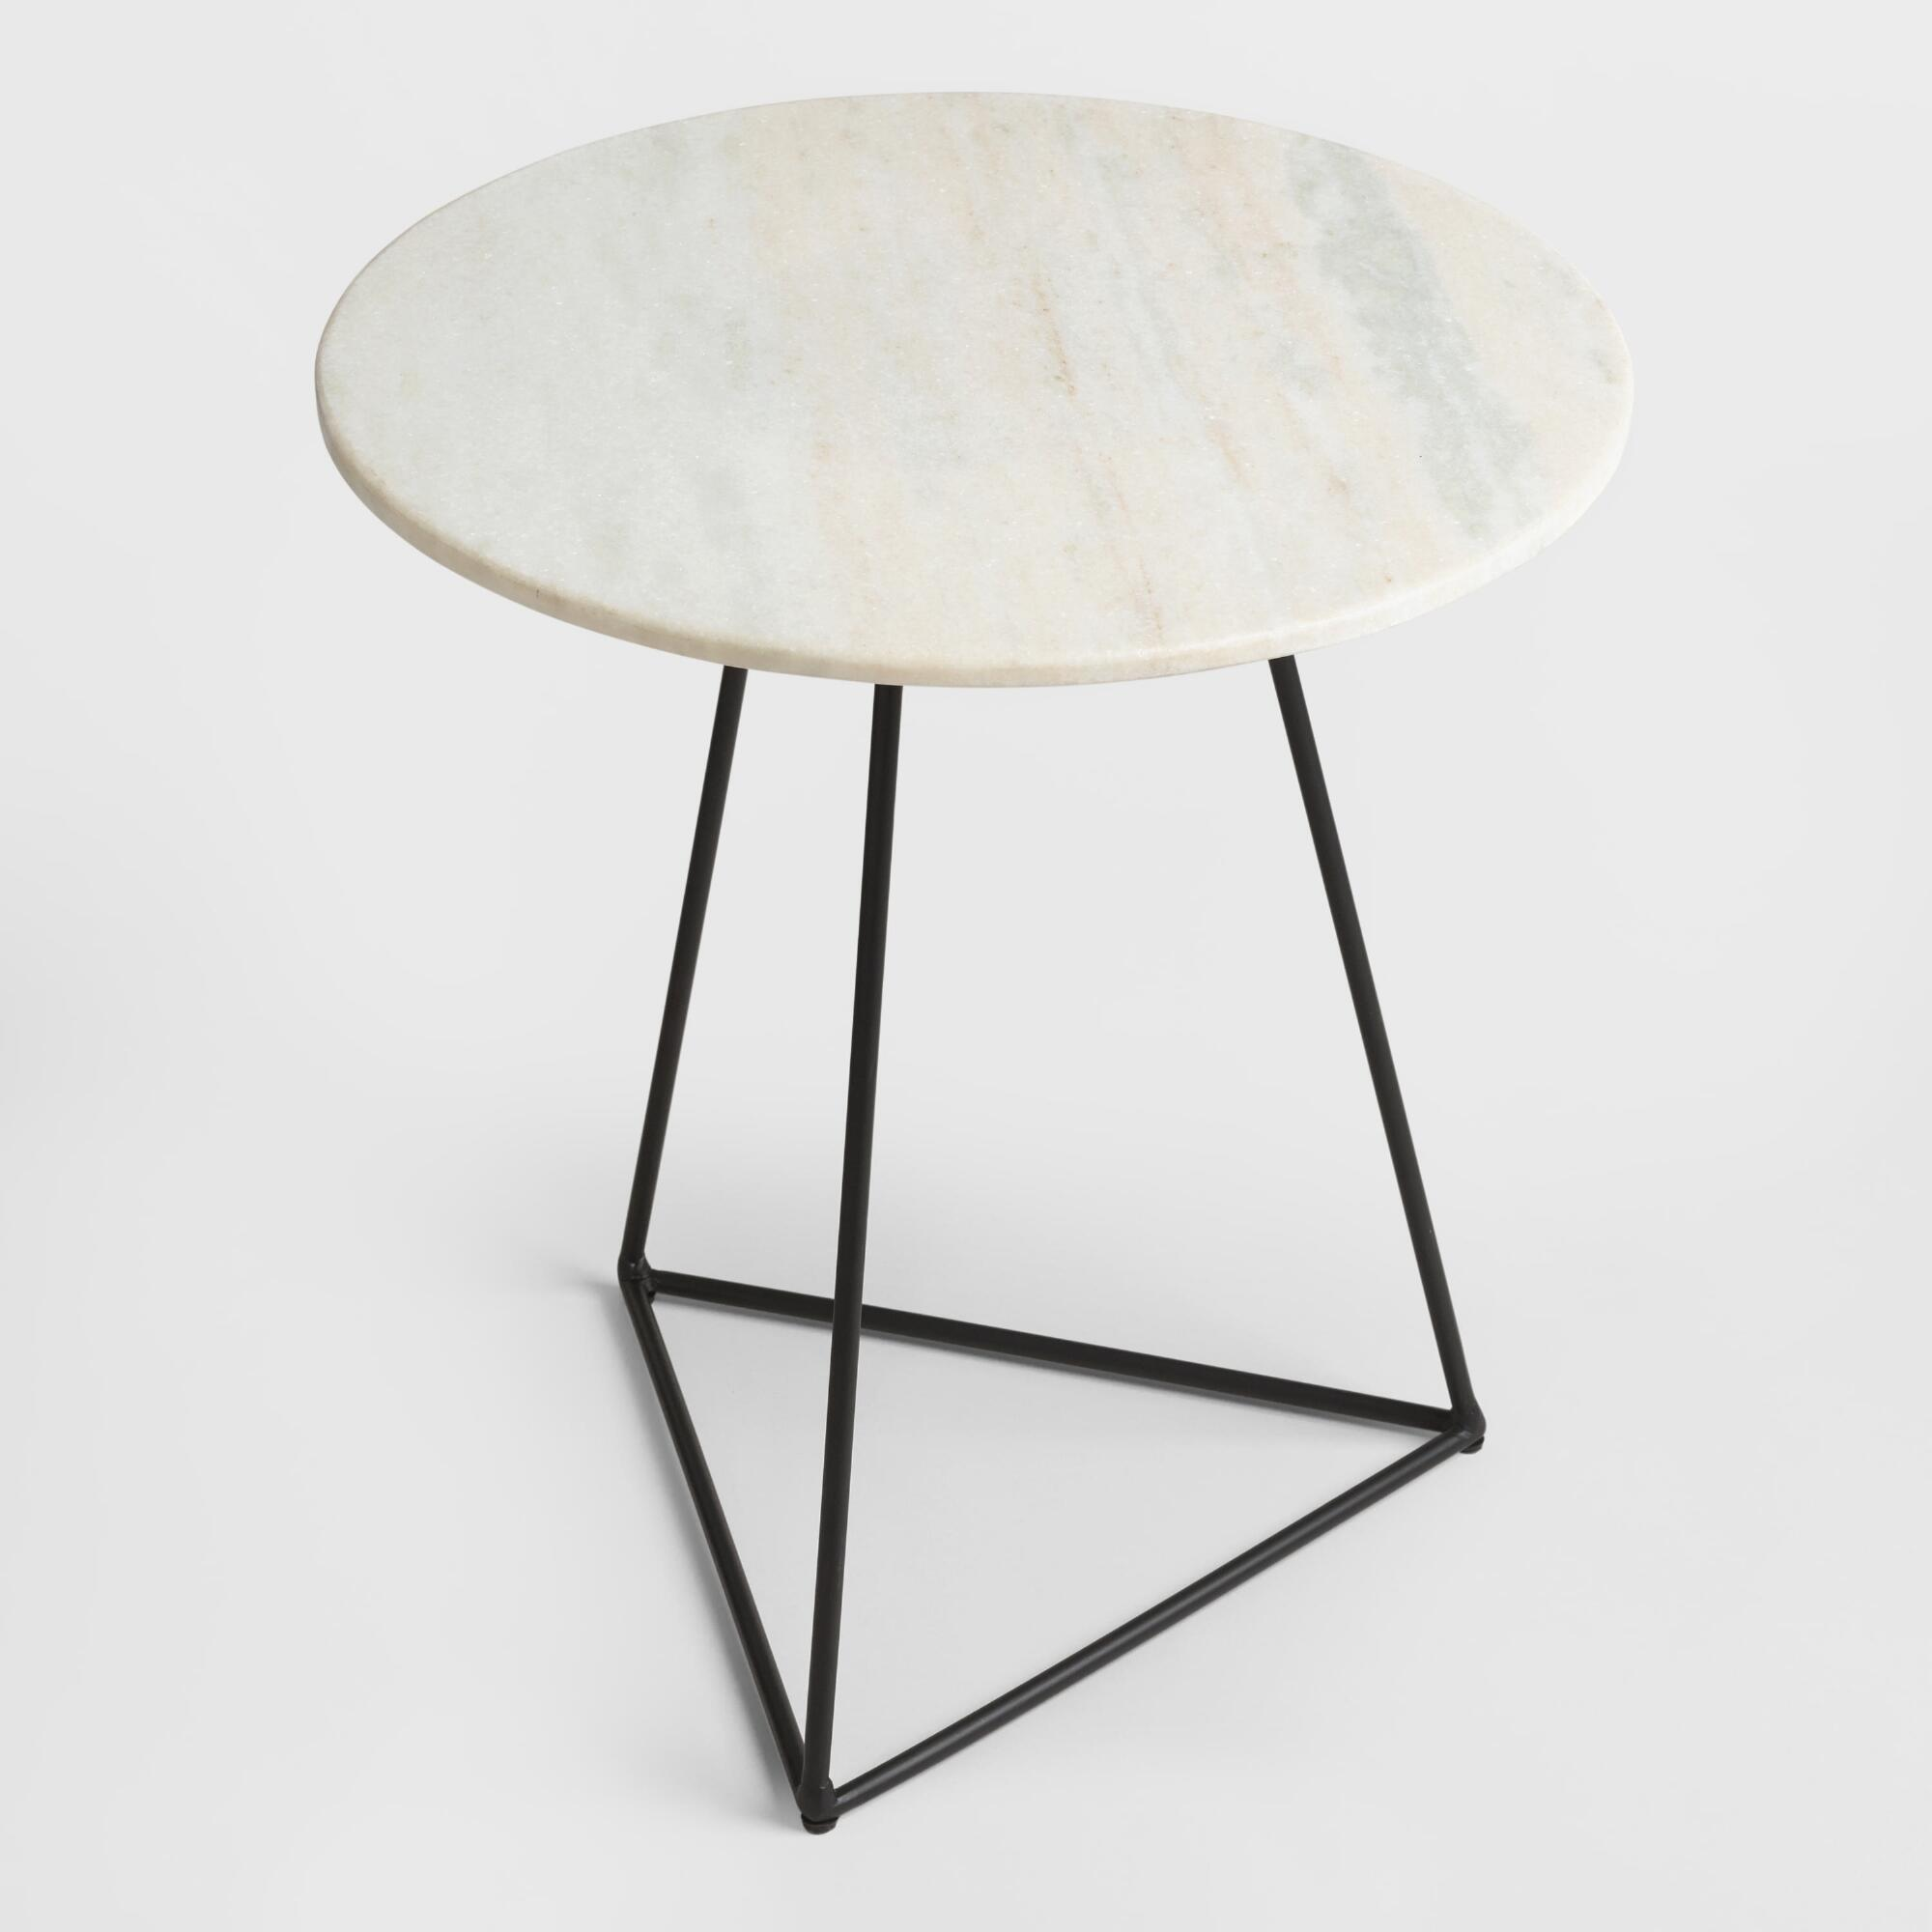 10 side tables for less than $250 Curbed